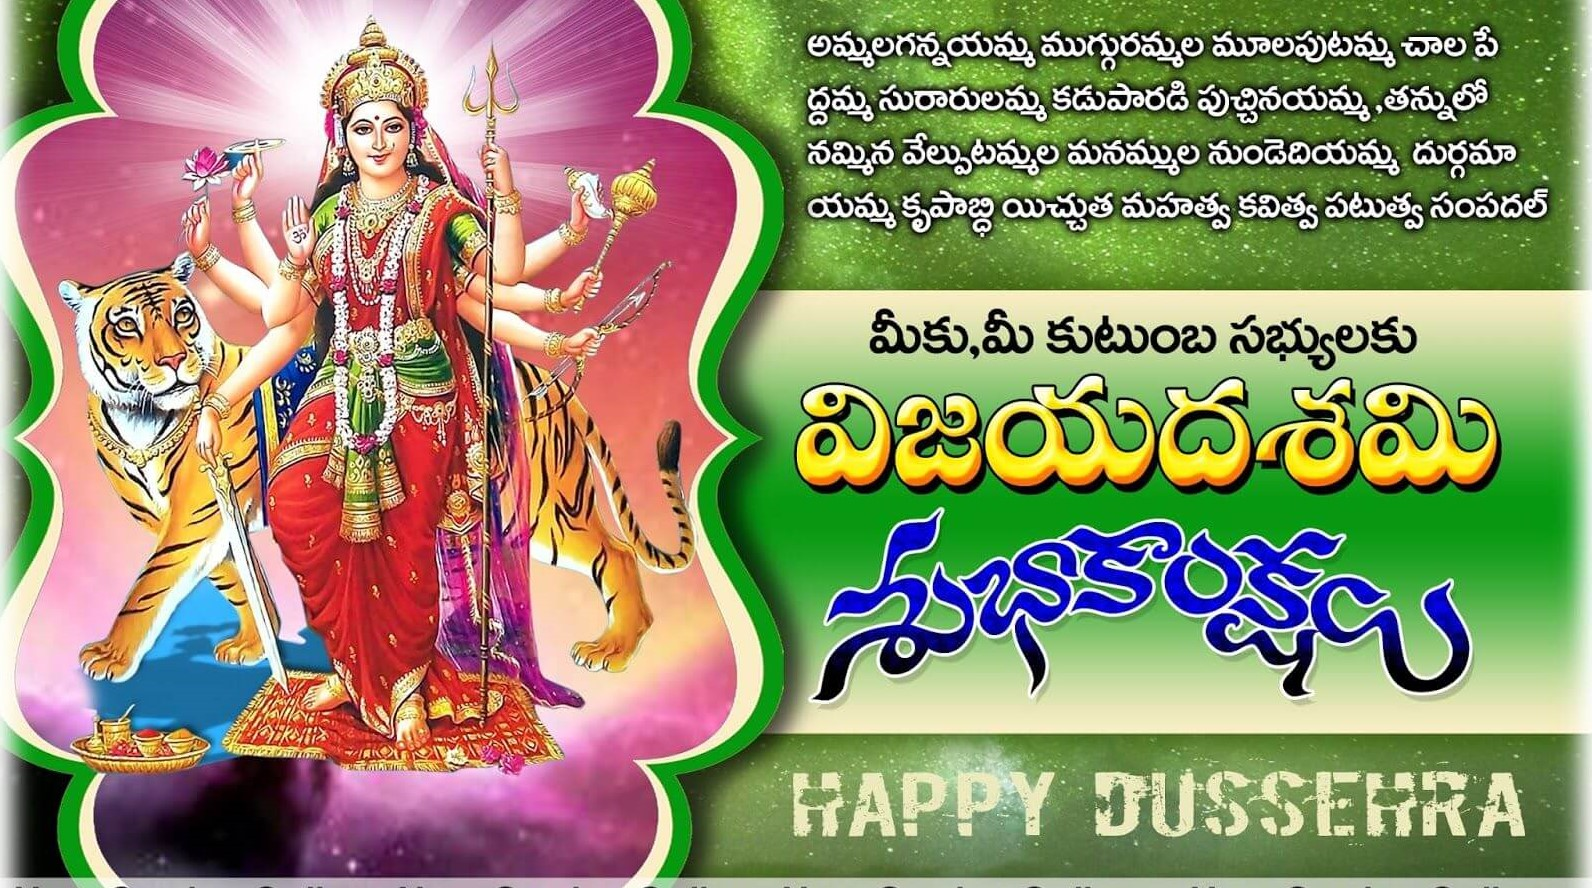 Happy Dussehra Quotes in Telegu | Telugu Wishes Messages for Dussehra